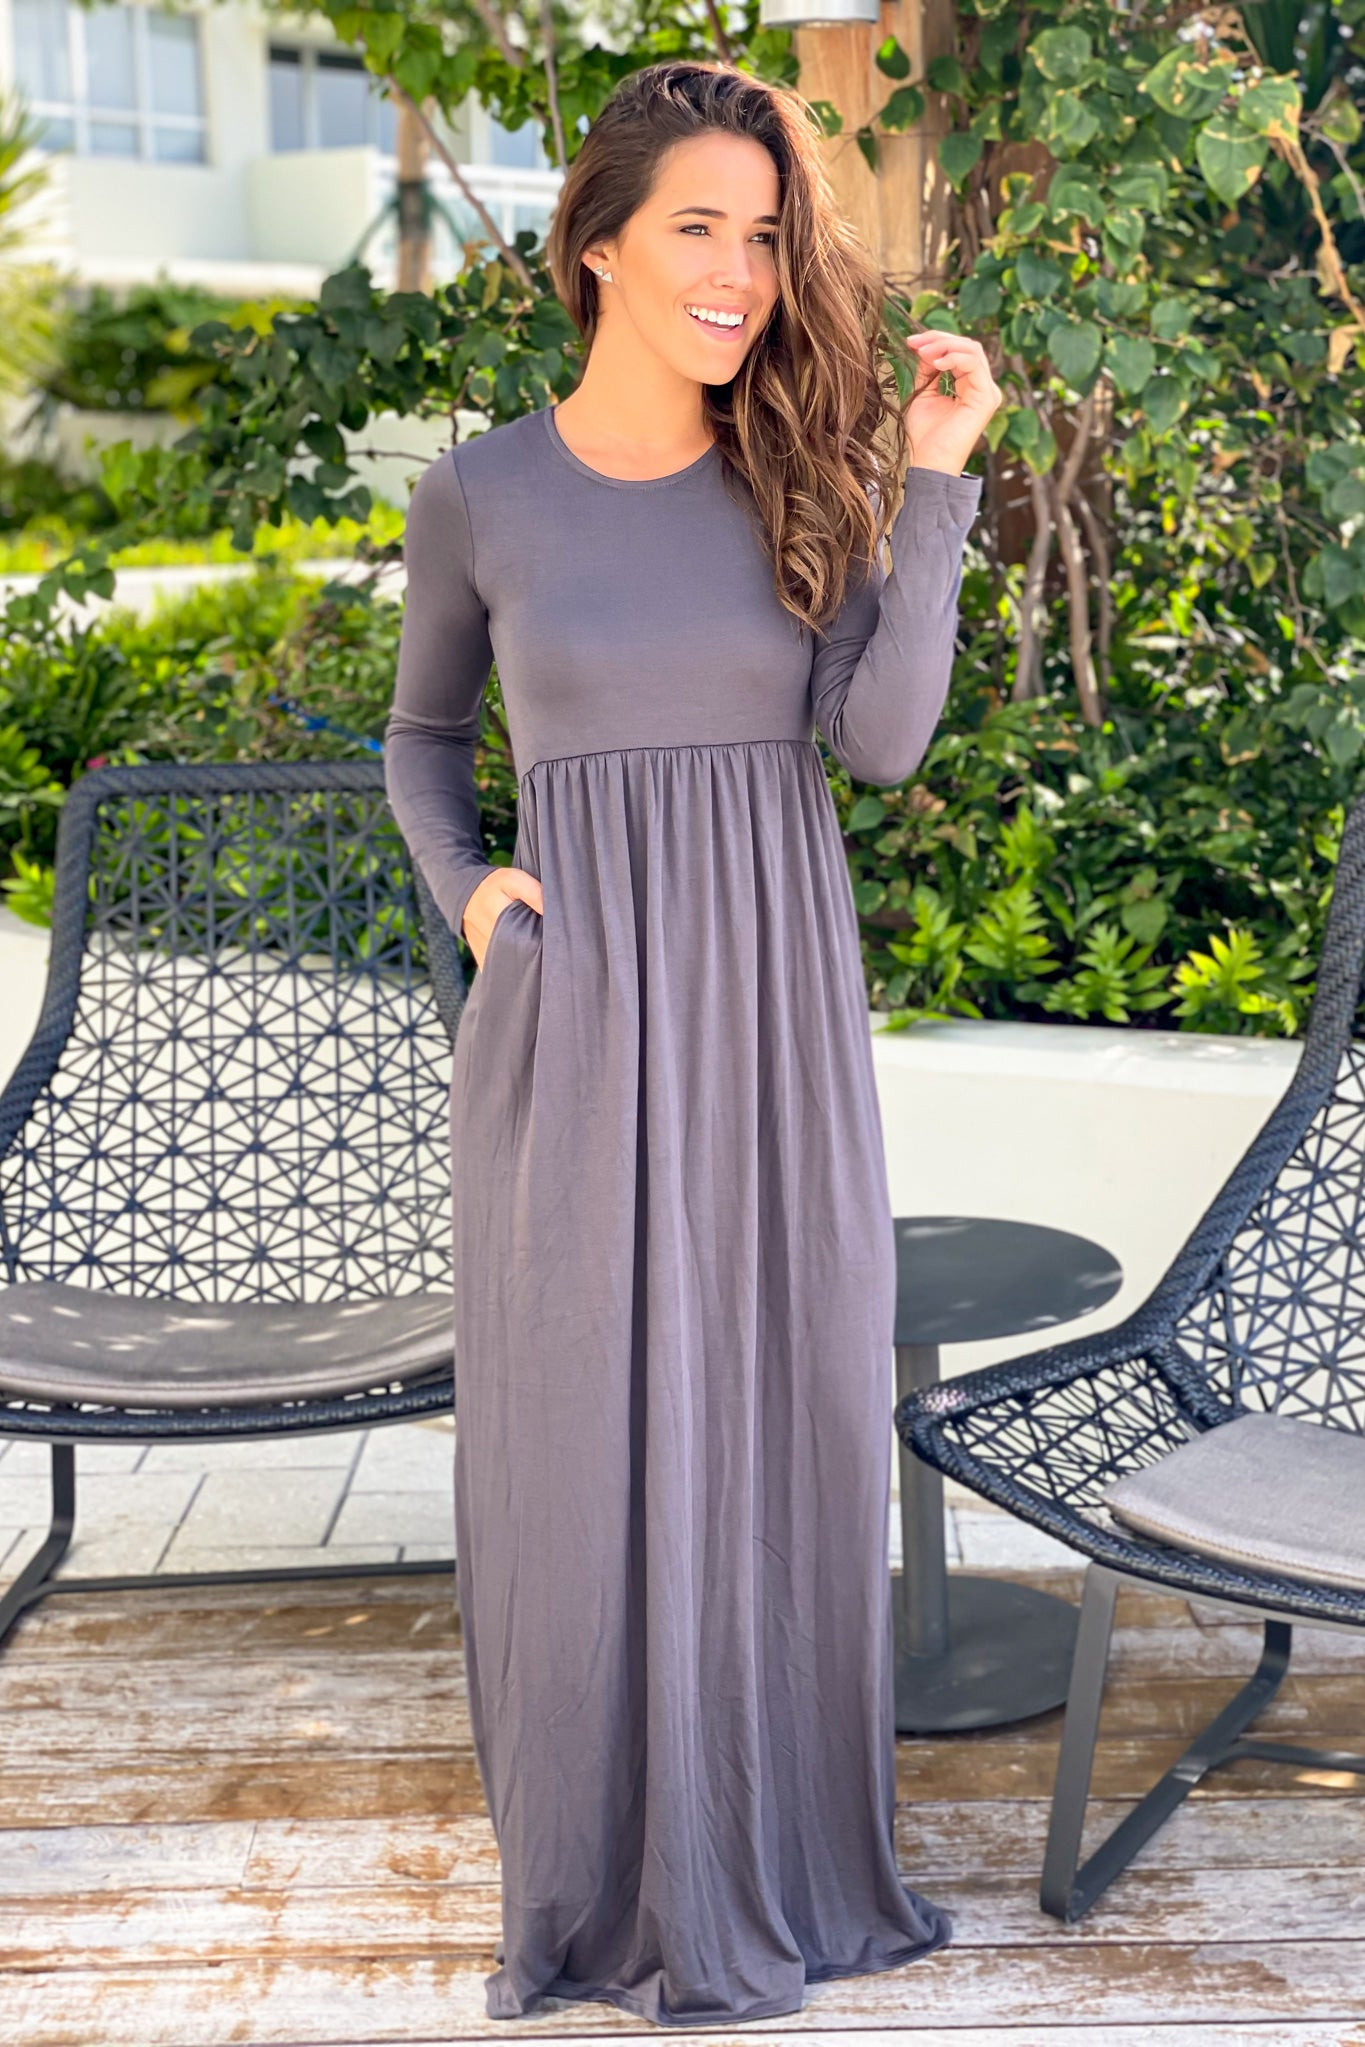 Ash Gray Long Sleeve Maxi Dress